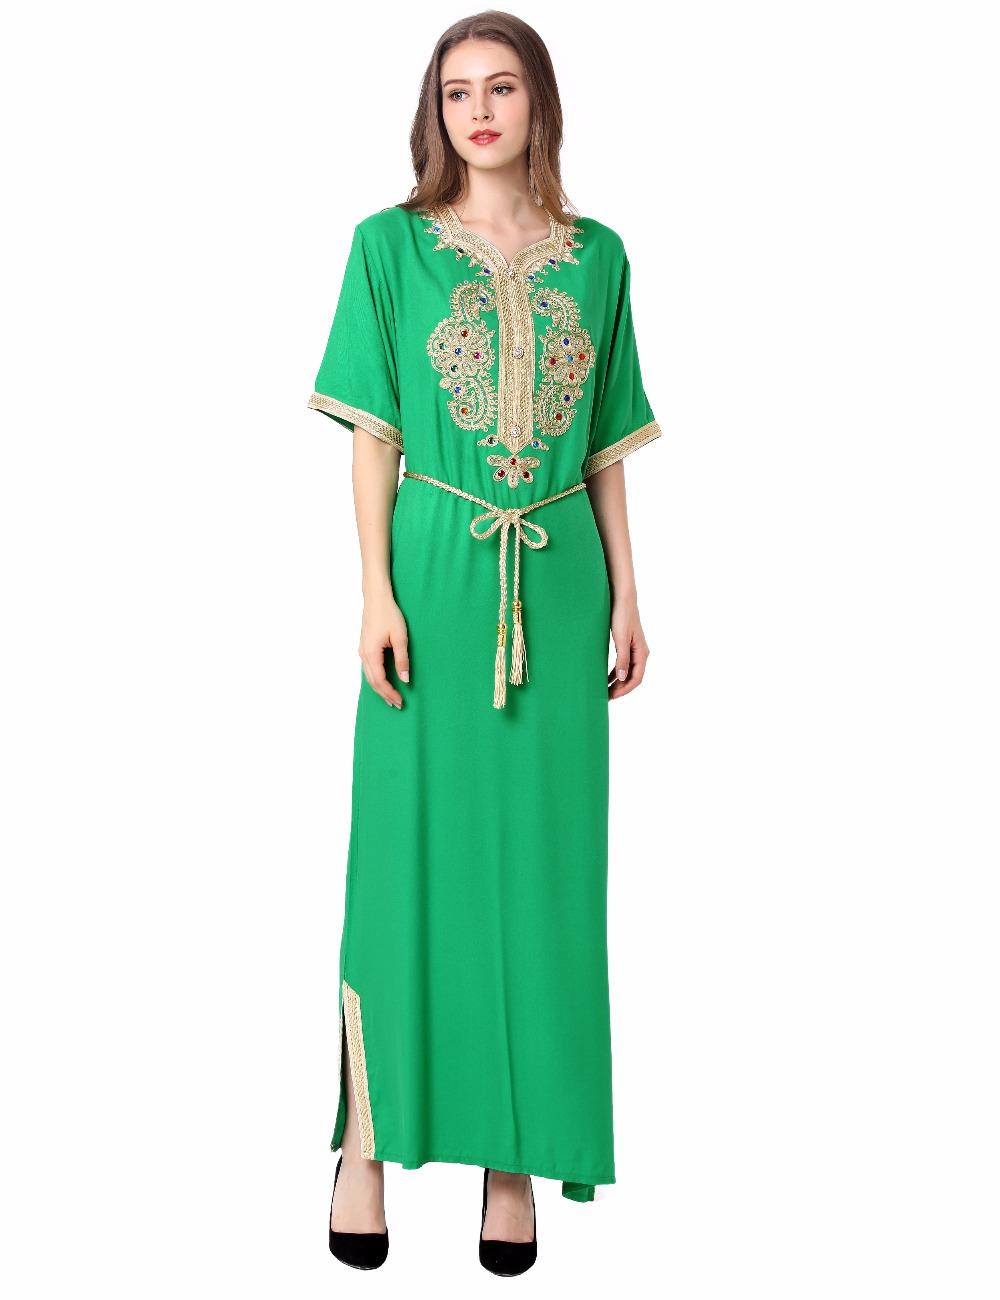 Turkish clothes online shopping